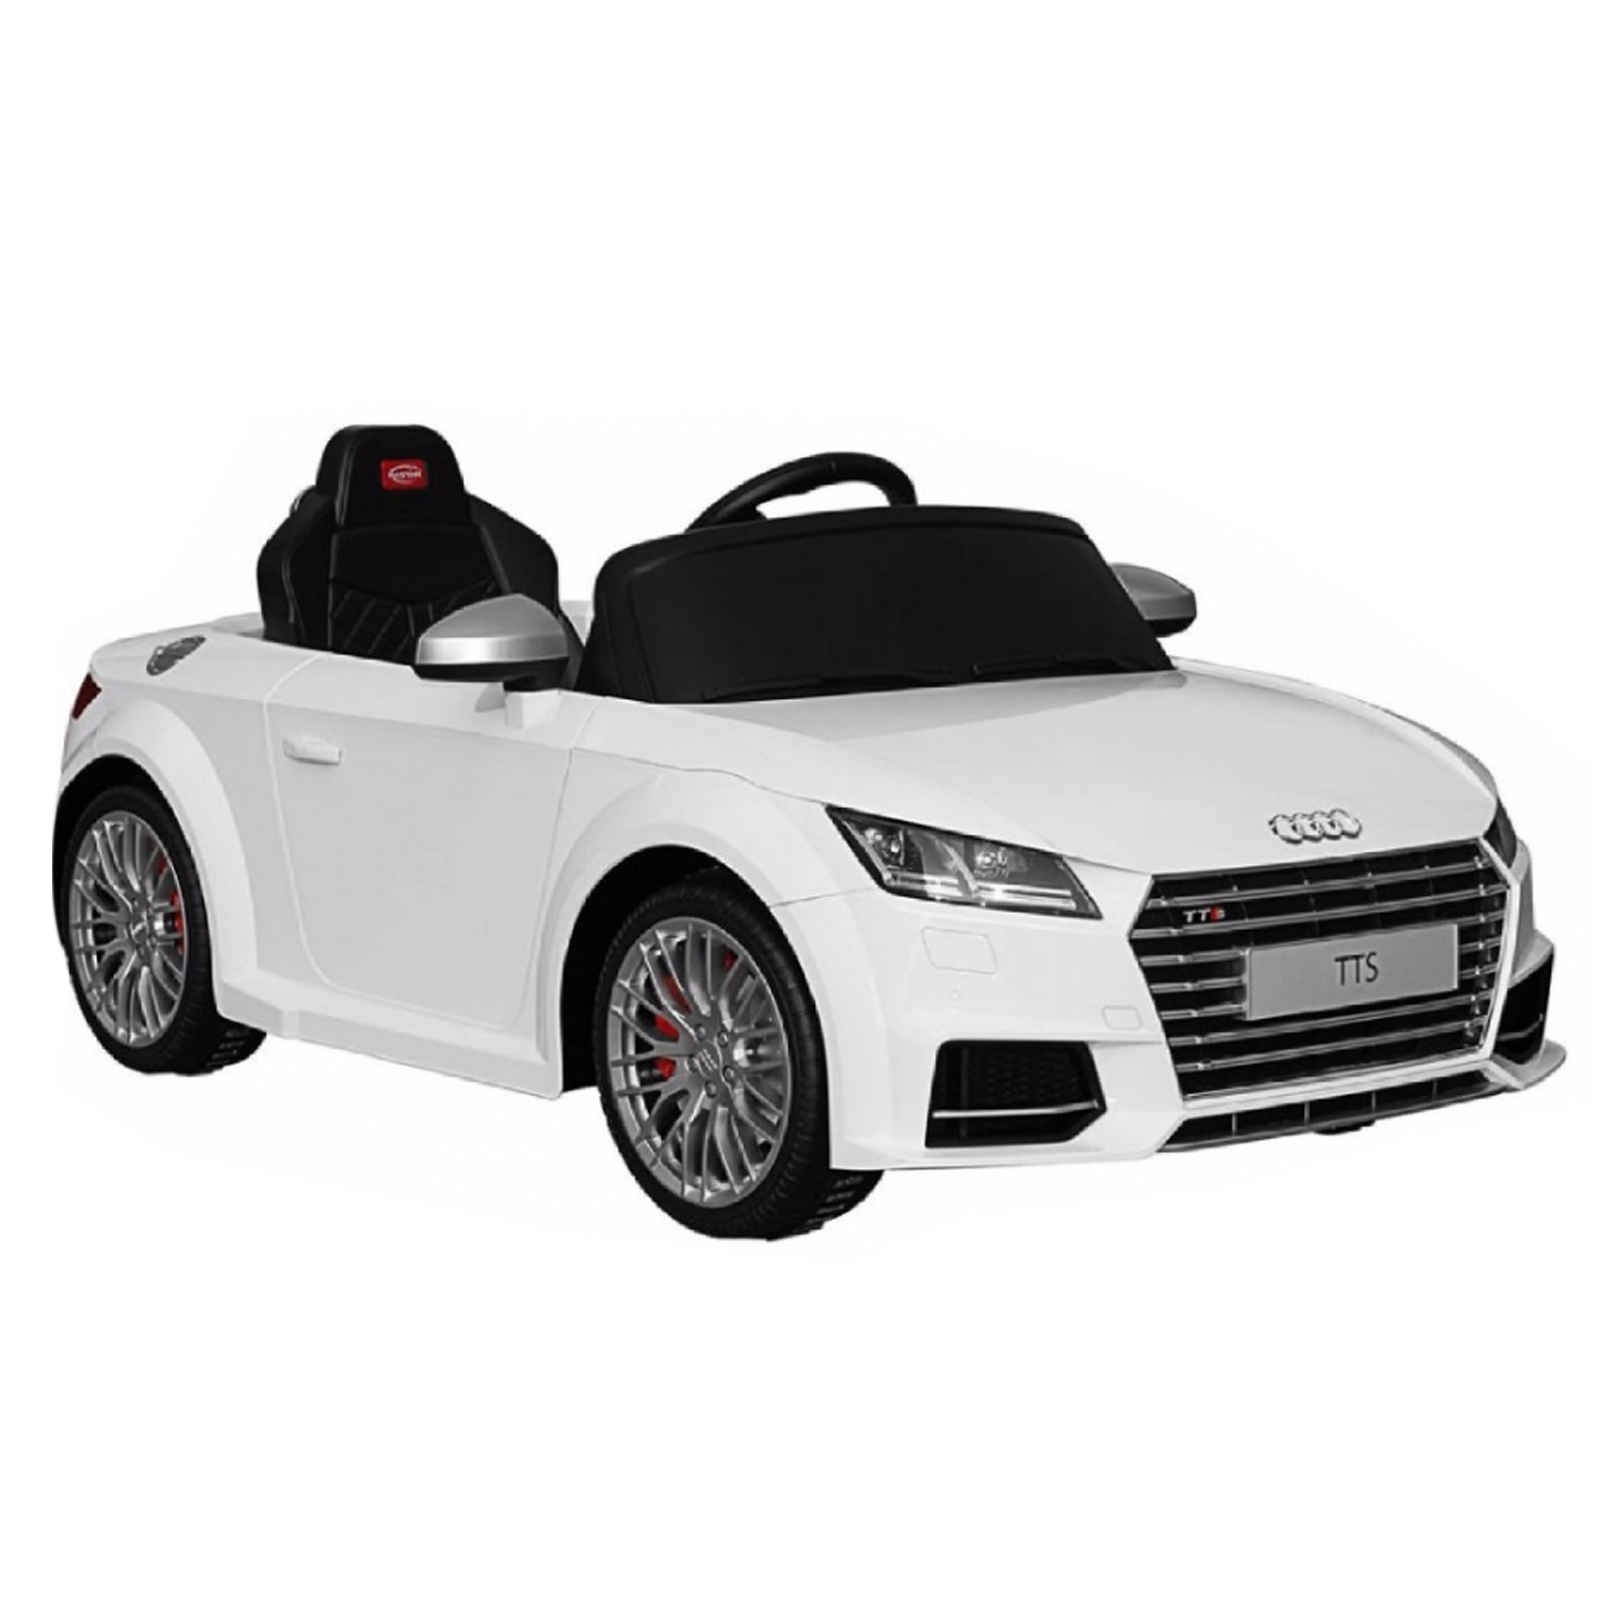 Wonderful White 2017 Audi TT Battery Powered Kids Car With Remote Control